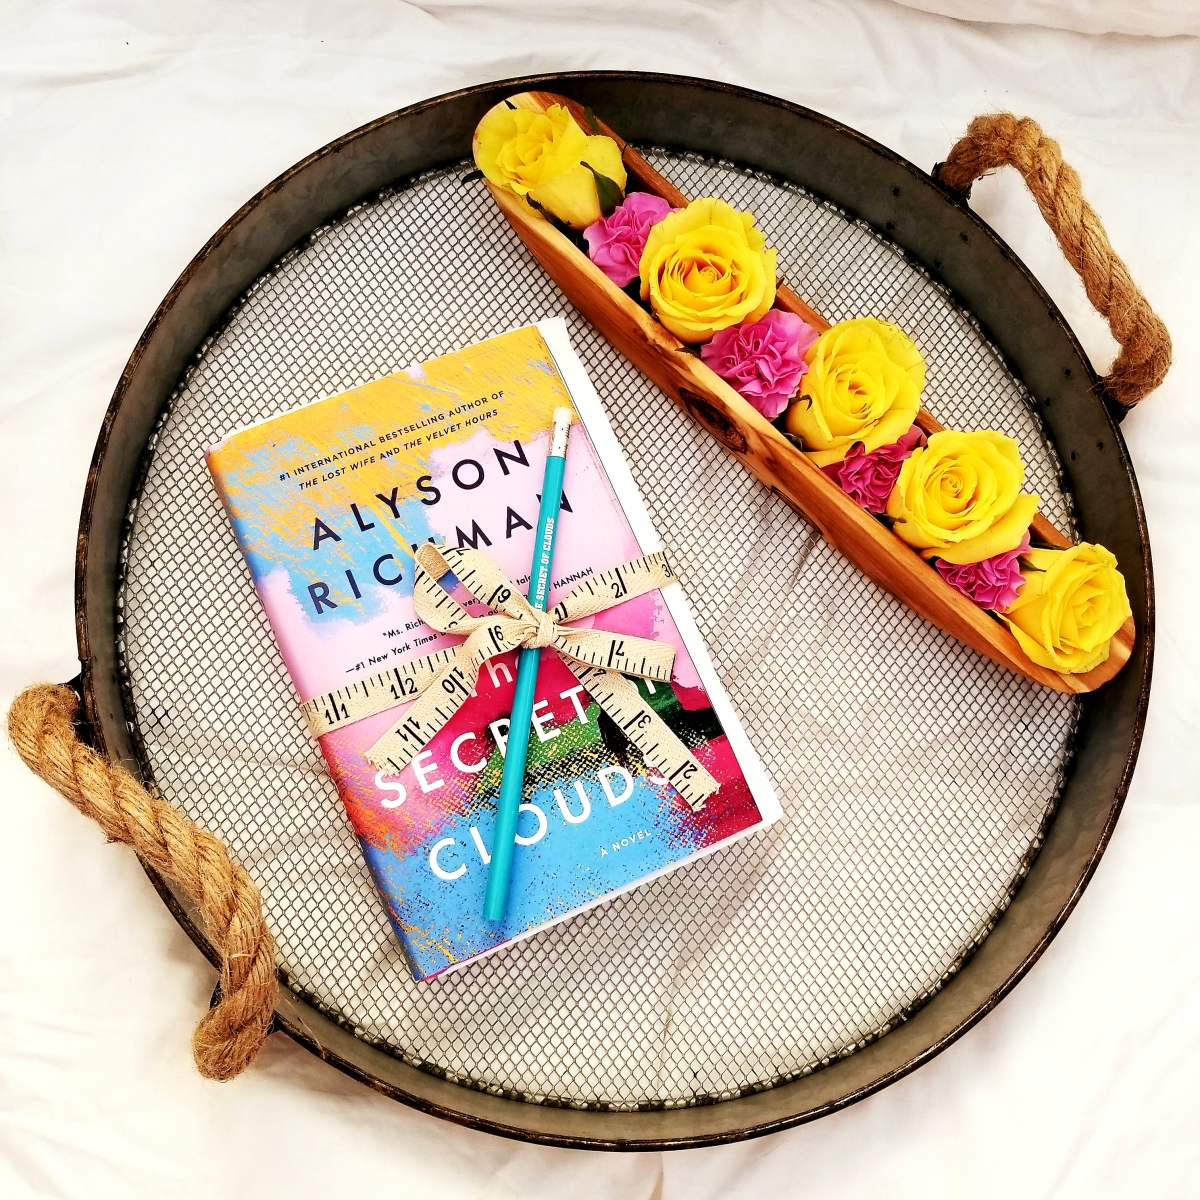 The Secret of Clouds by Alyson Richman #bookreview #tarheelreader #thrsecretclouds @alysonrichman @berkleypub #thesecretofclouds #bookbestiessecretofclouds #blogtour #bookgiveaway